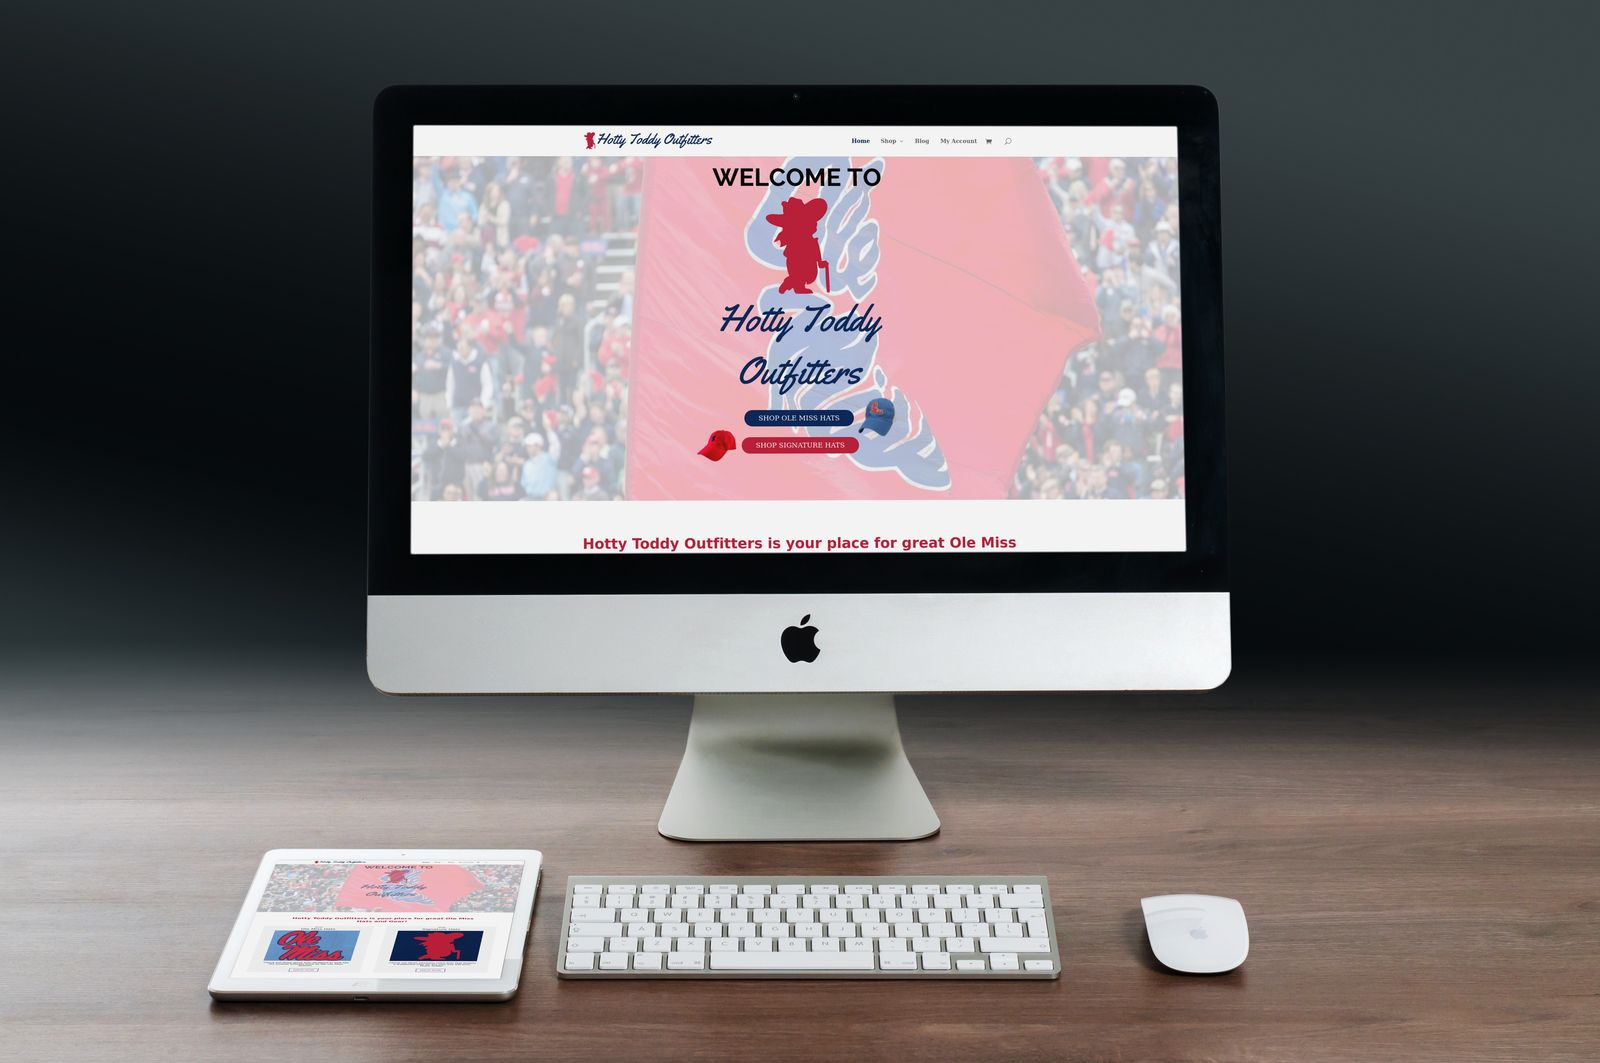 Desktop and iPad versions of Hotty Toddy Outfitters website